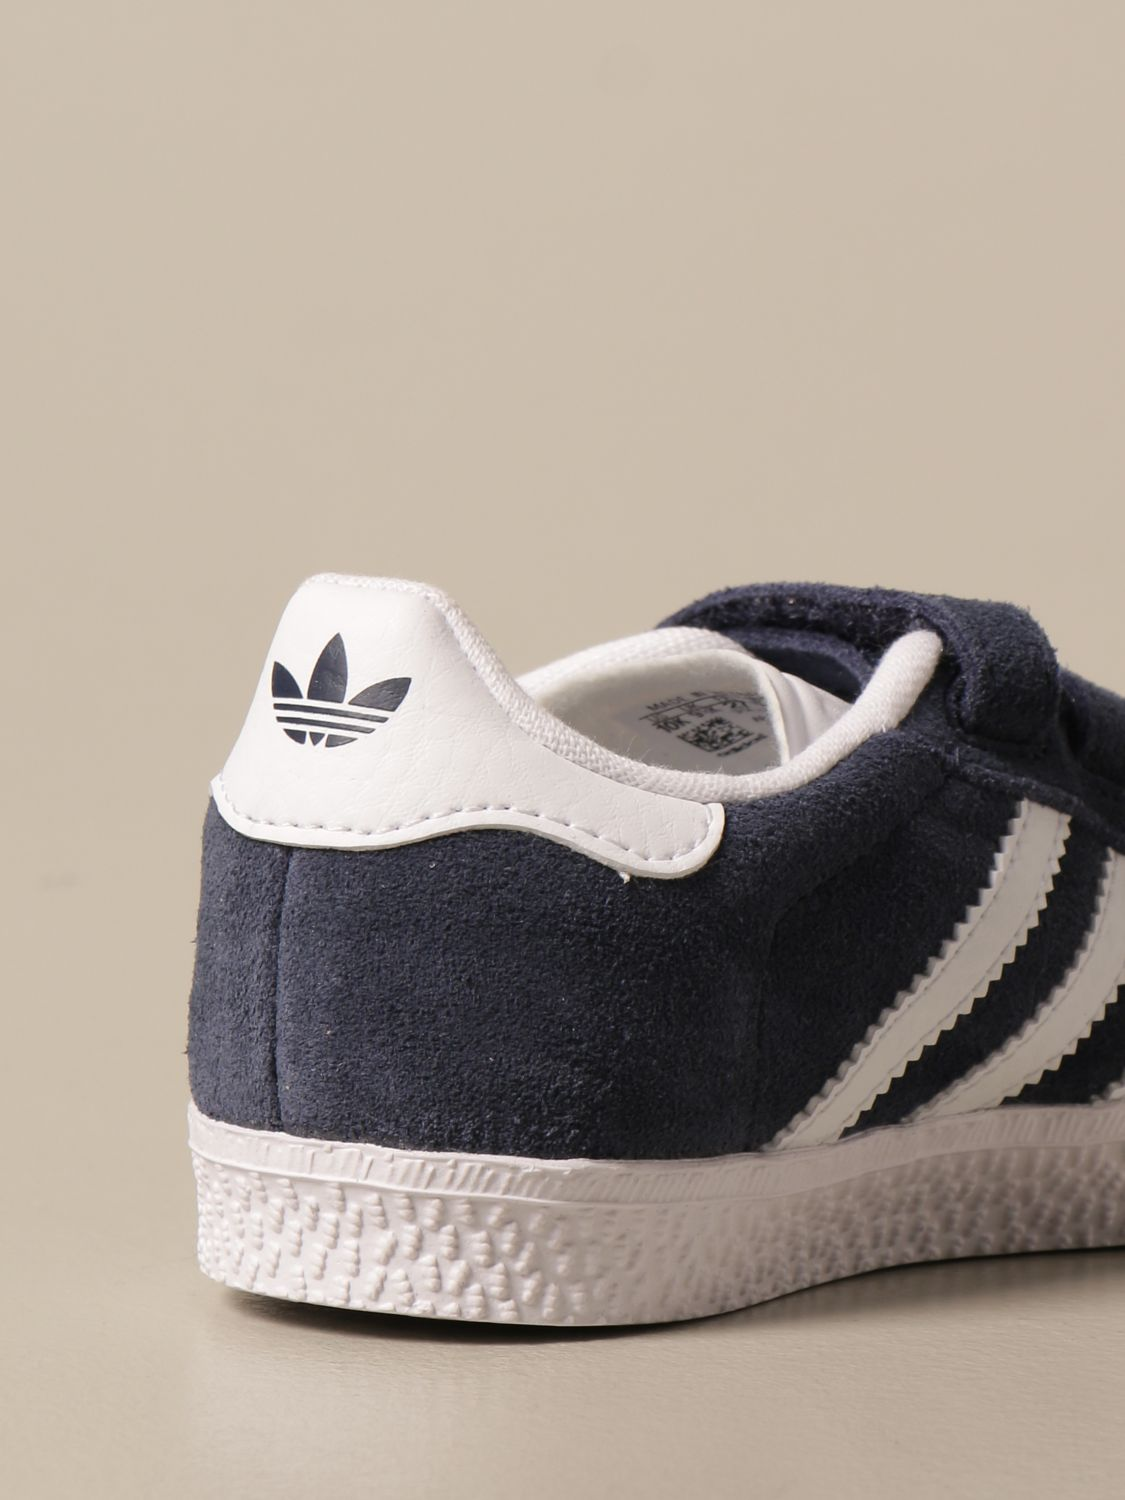 Gazelle Adidas Originals sneakers in suede and leather